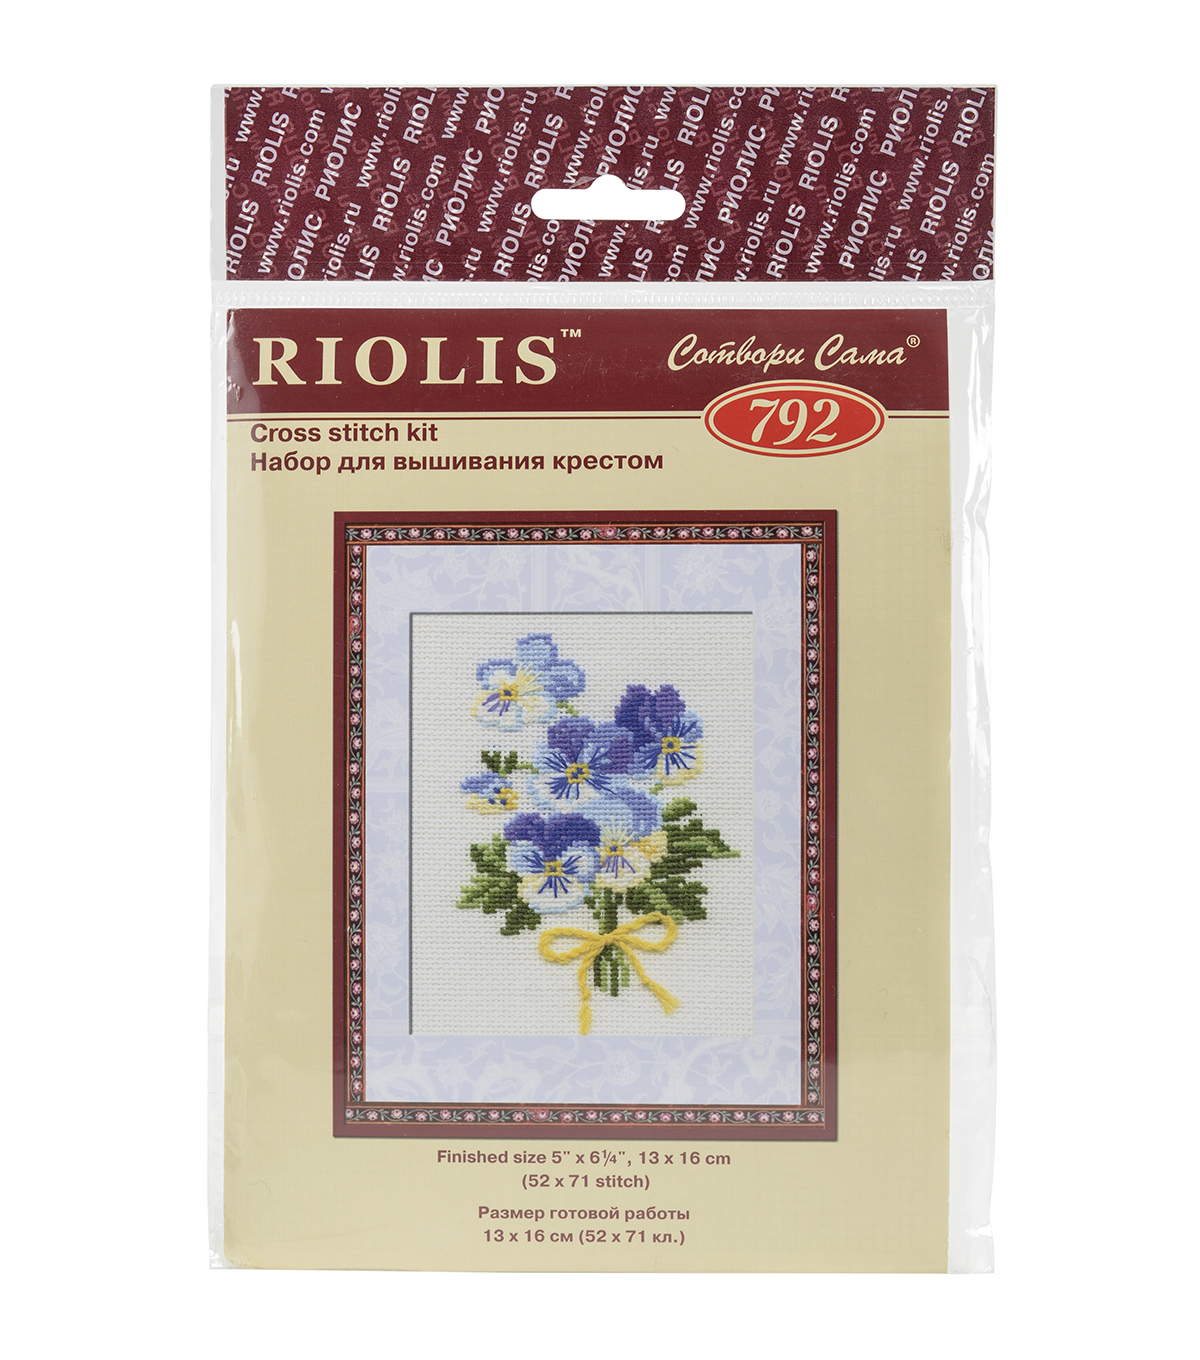 Riolis Violas Counted Cross Stitch Kit